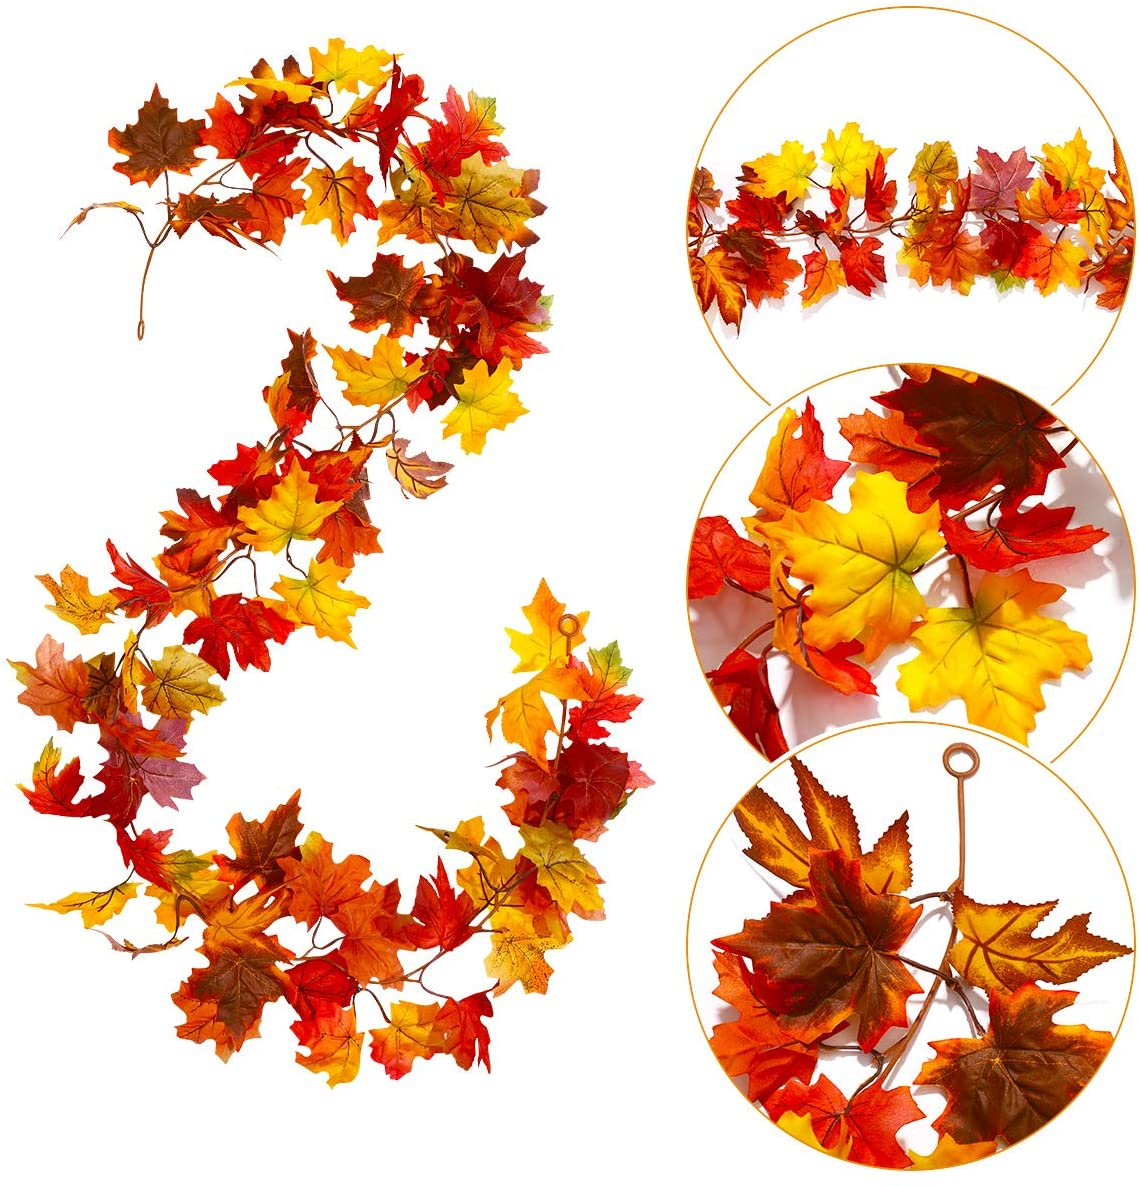 Fall Garland Maple Leaf, Artificial Autumn Maple Leaves Garland 2 Packs with 8 Pcs Artificial Pumpkins